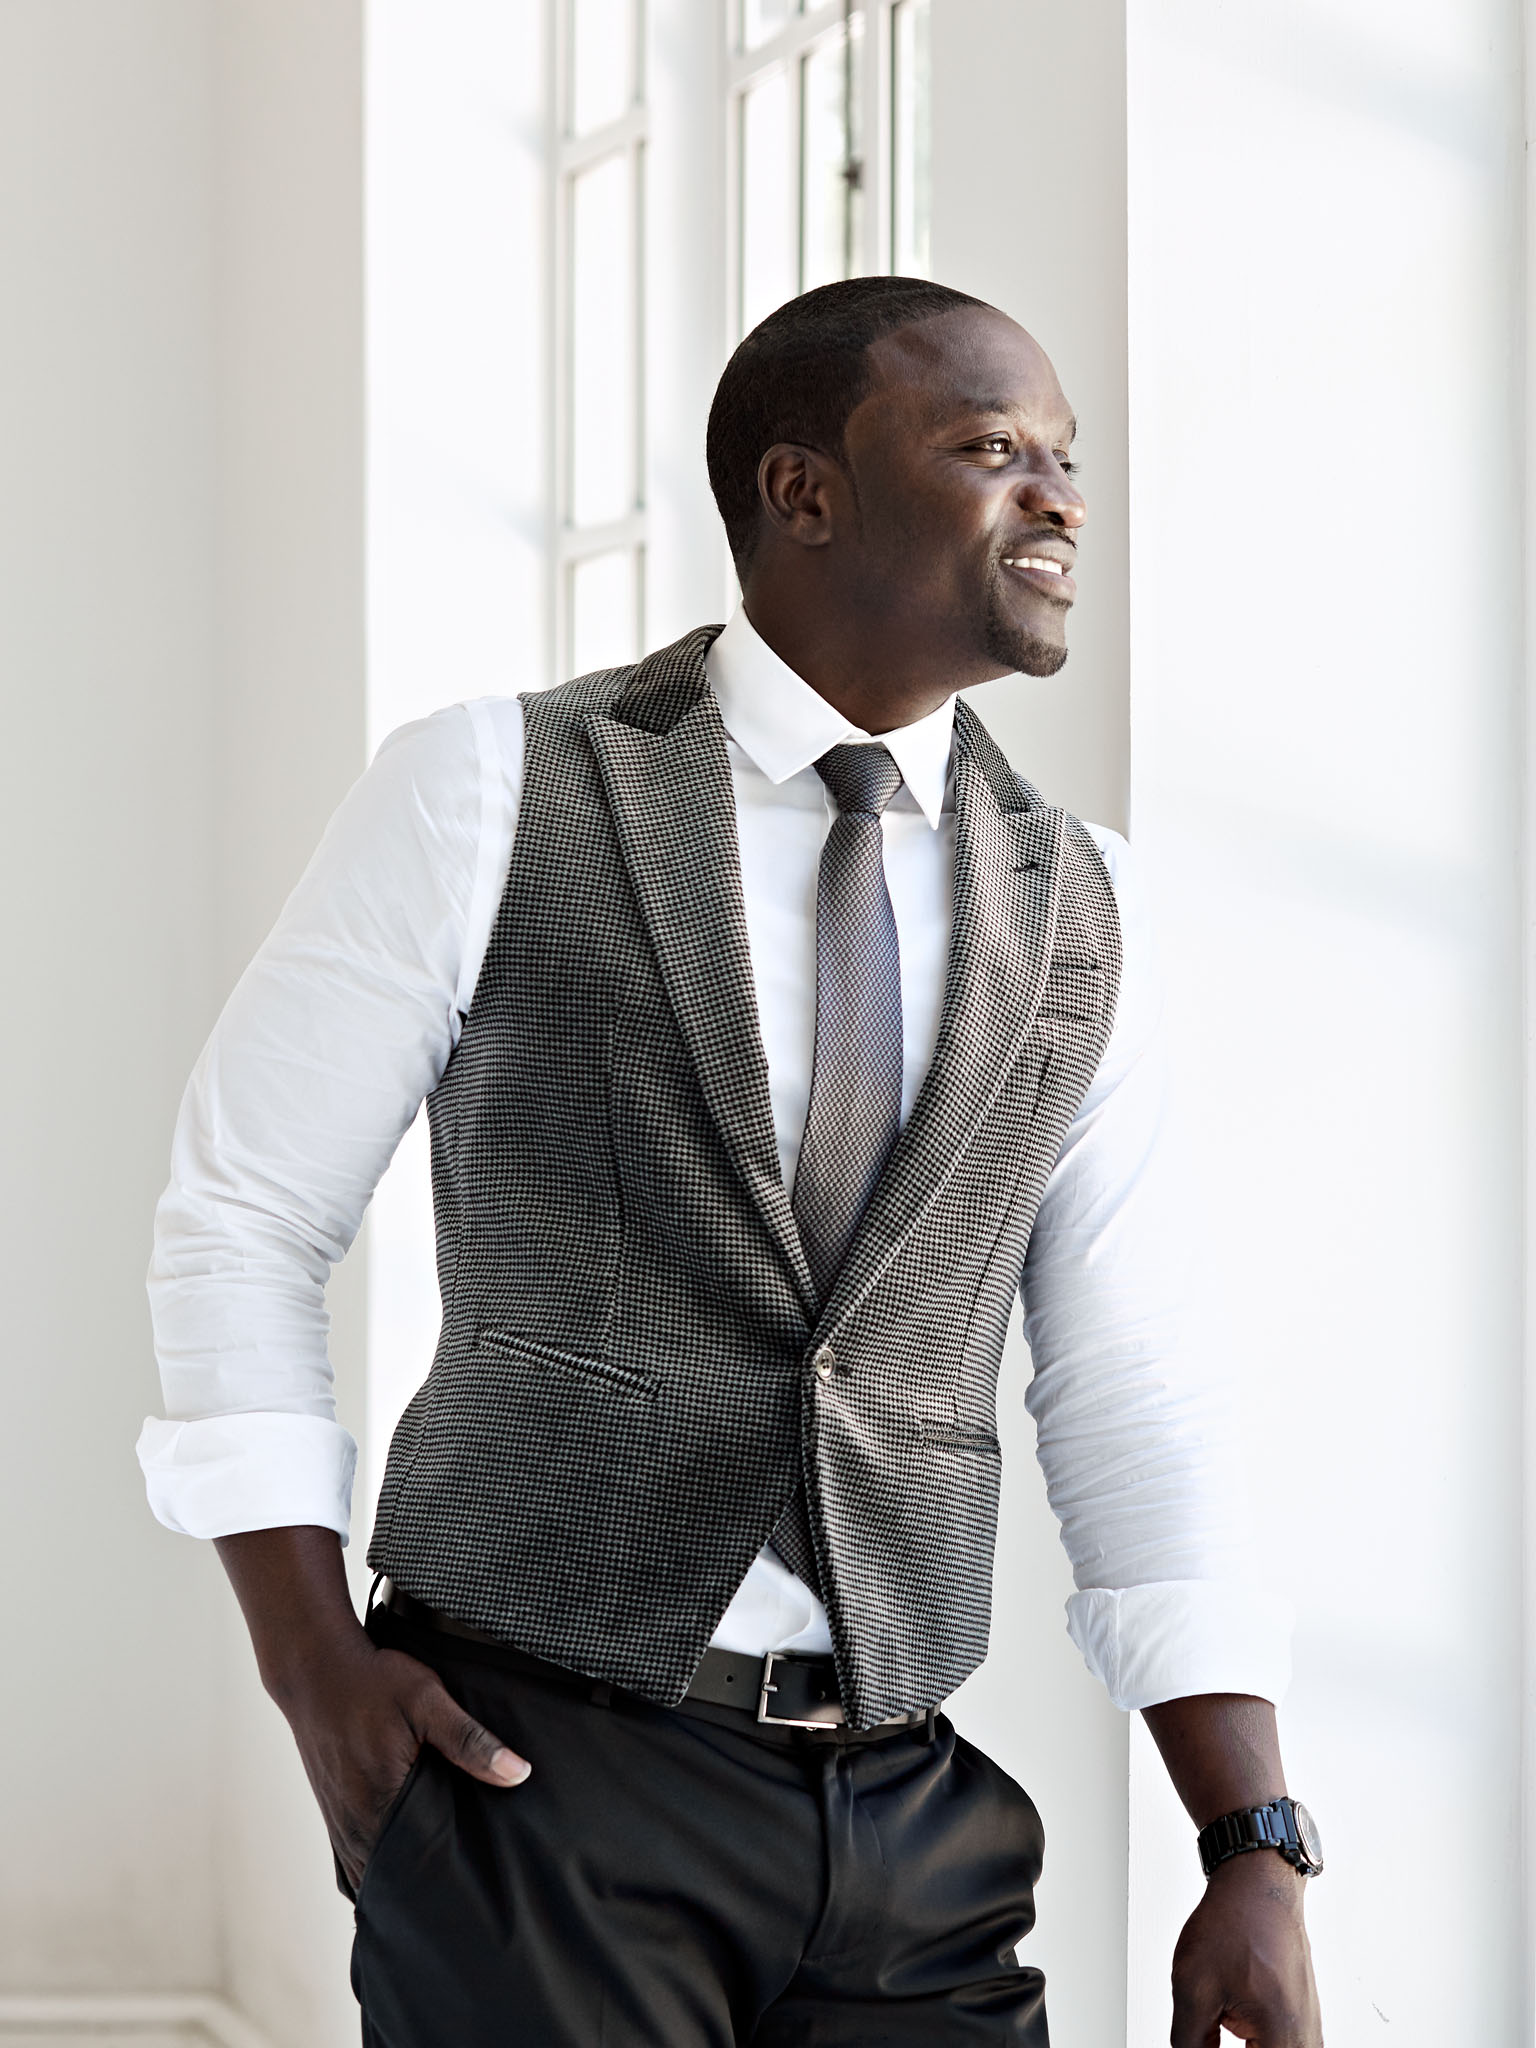 An editorial photographer portrait of Akon